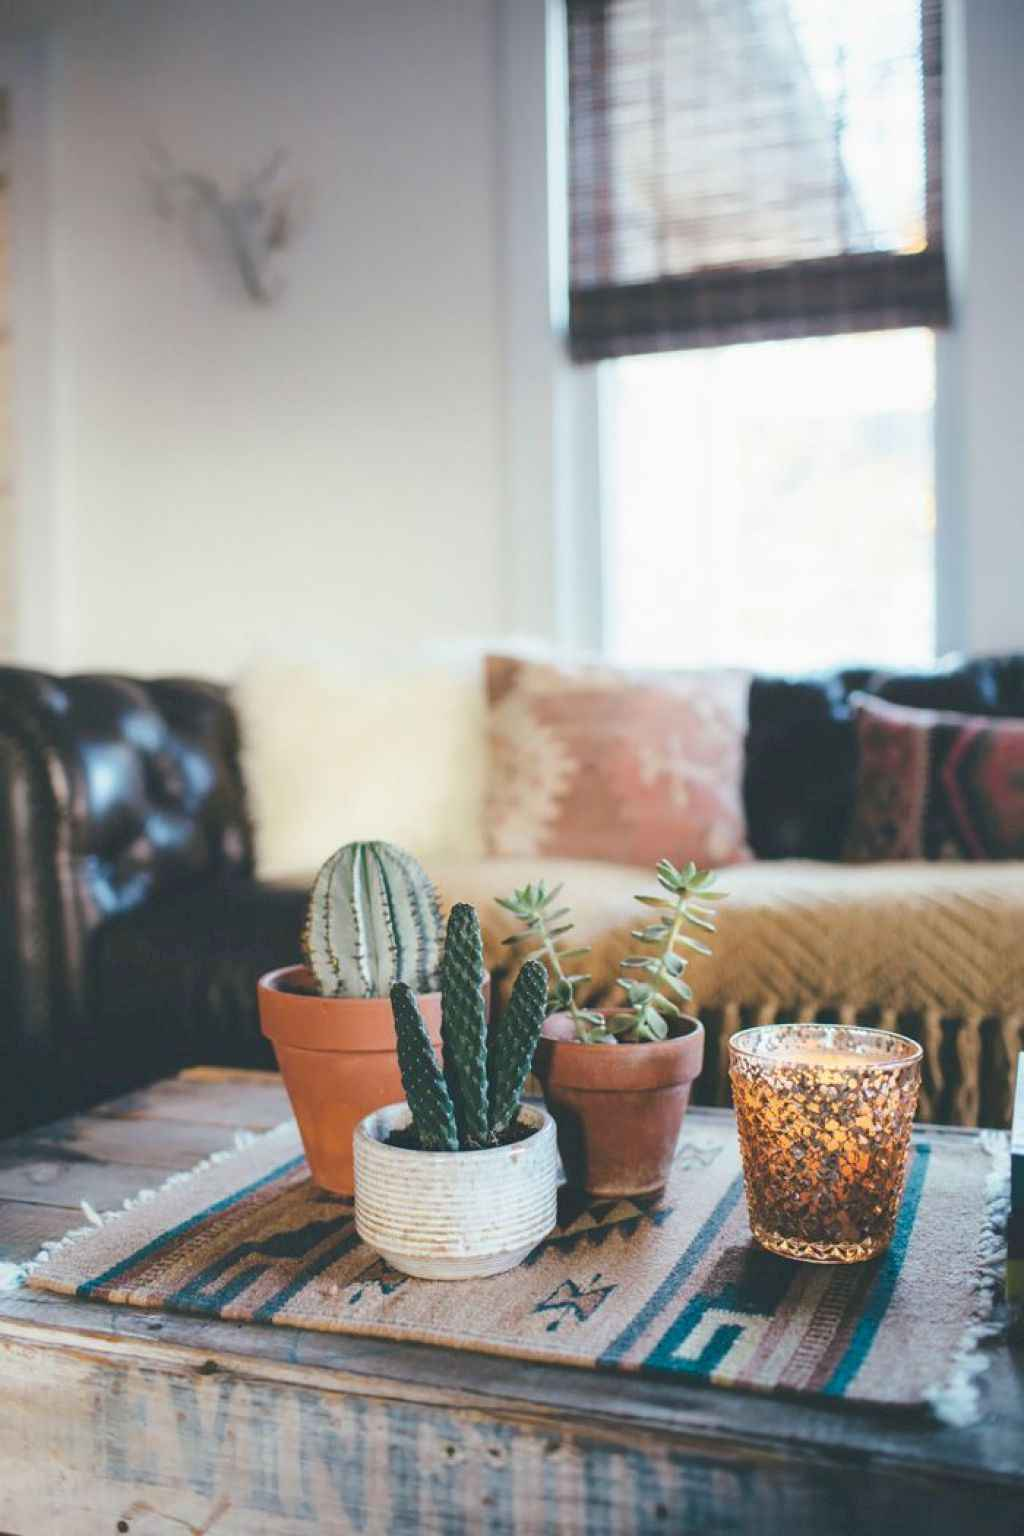 Clever college apartment decorating ideas on a budget (18)